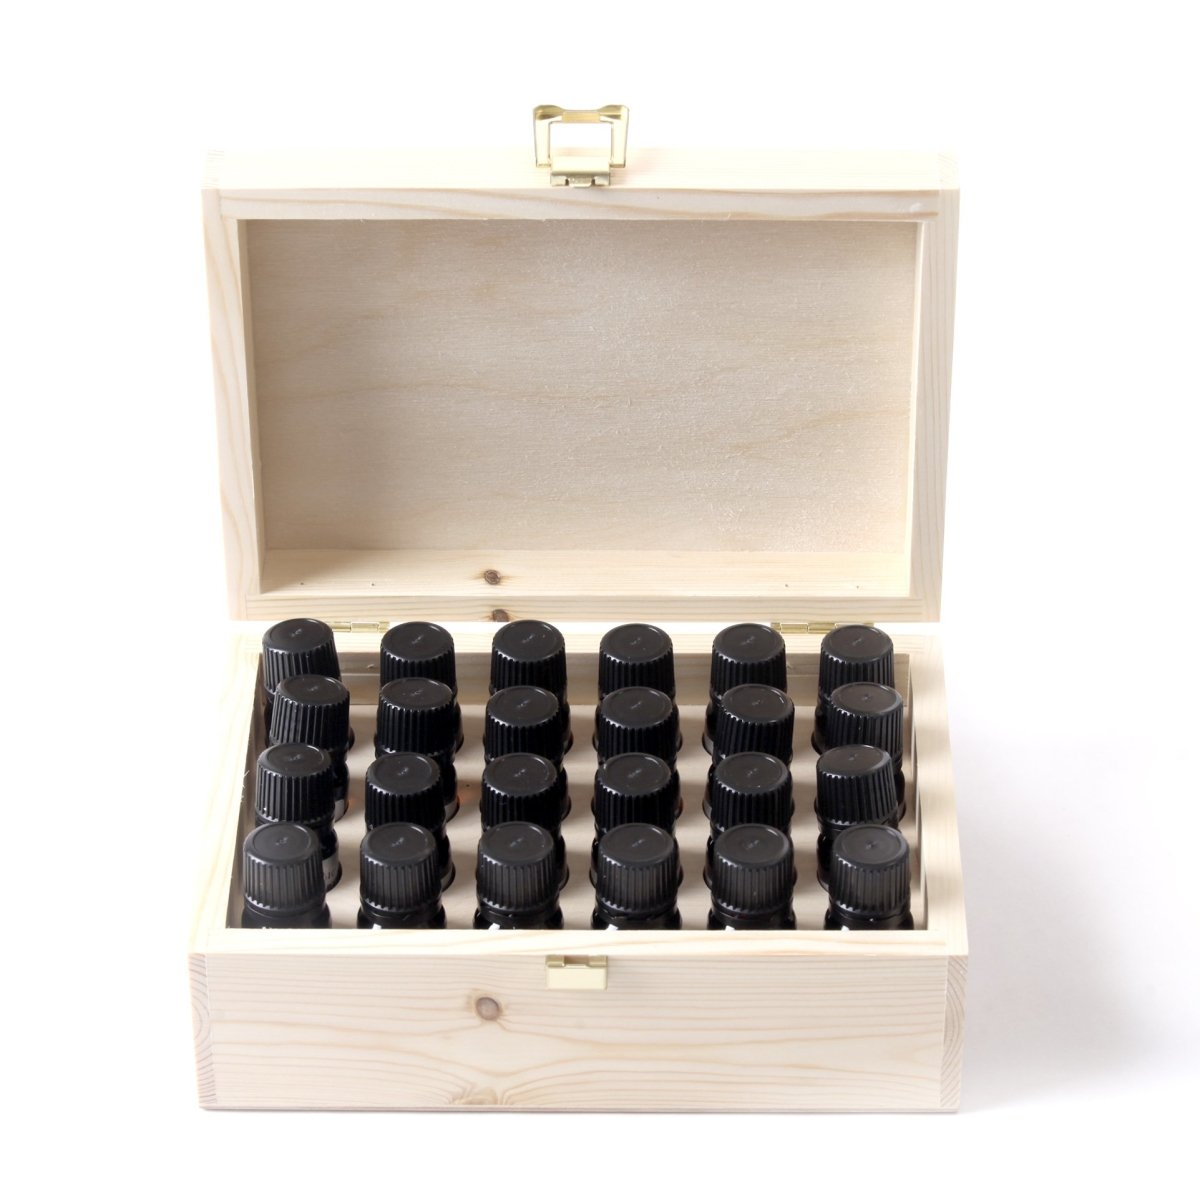 Fragrant Oils Gift Pack in Wooden Box - Mystic Moments UK